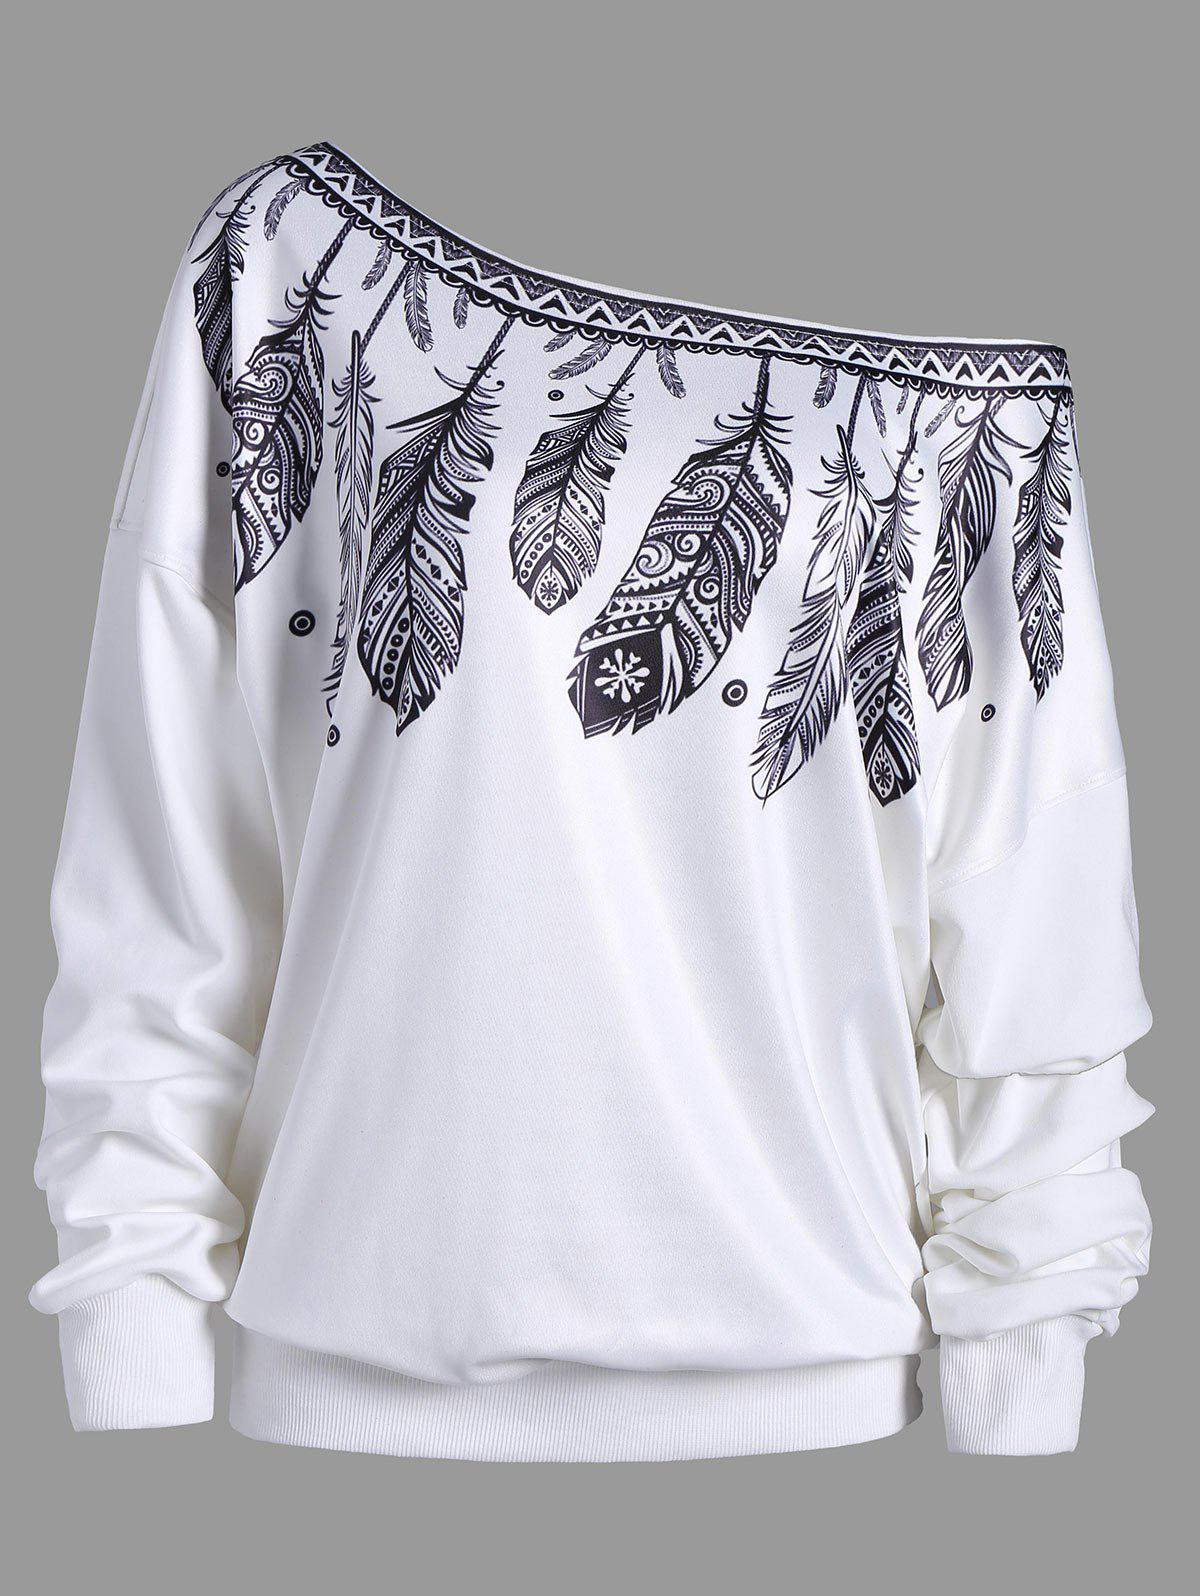 Drop Shoulder Feather Print Skew Neck SweatshirtWOMEN<br><br>Size: XL; Color: WHITE; Material: Polyester; Shirt Length: Regular; Sleeve Length: Full; Style: Fashion; Pattern Style: Feather; Season: Fall; Weight: 0.4500kg; Package Contents: 1 x Sweatshirt;